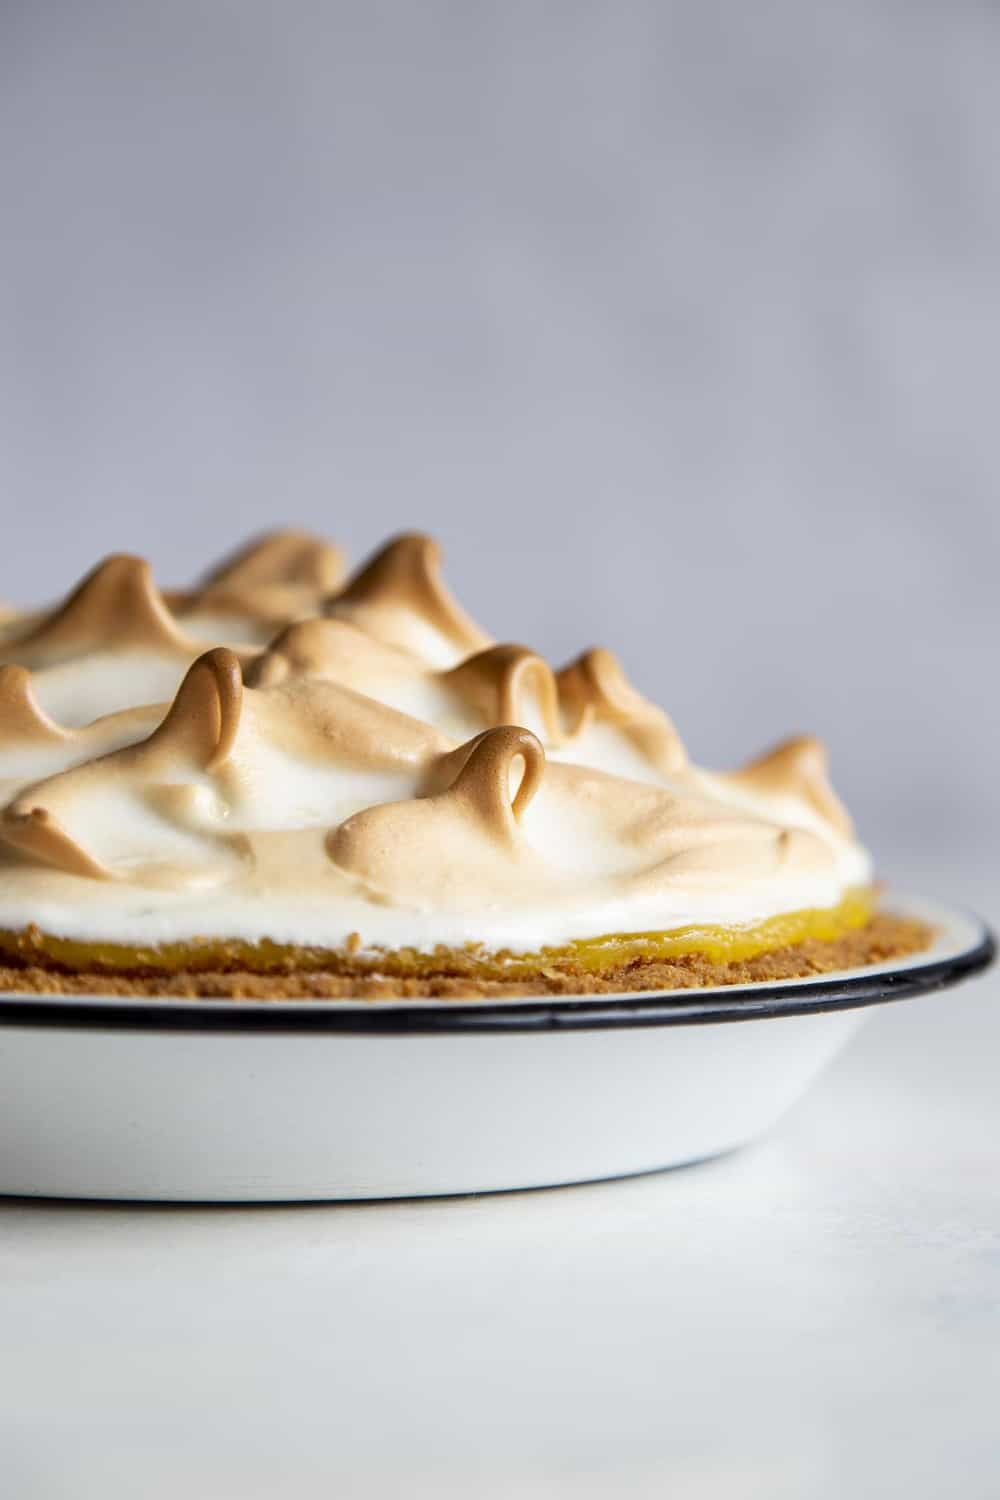 Baked Lemon Meringue pie with a golden top.